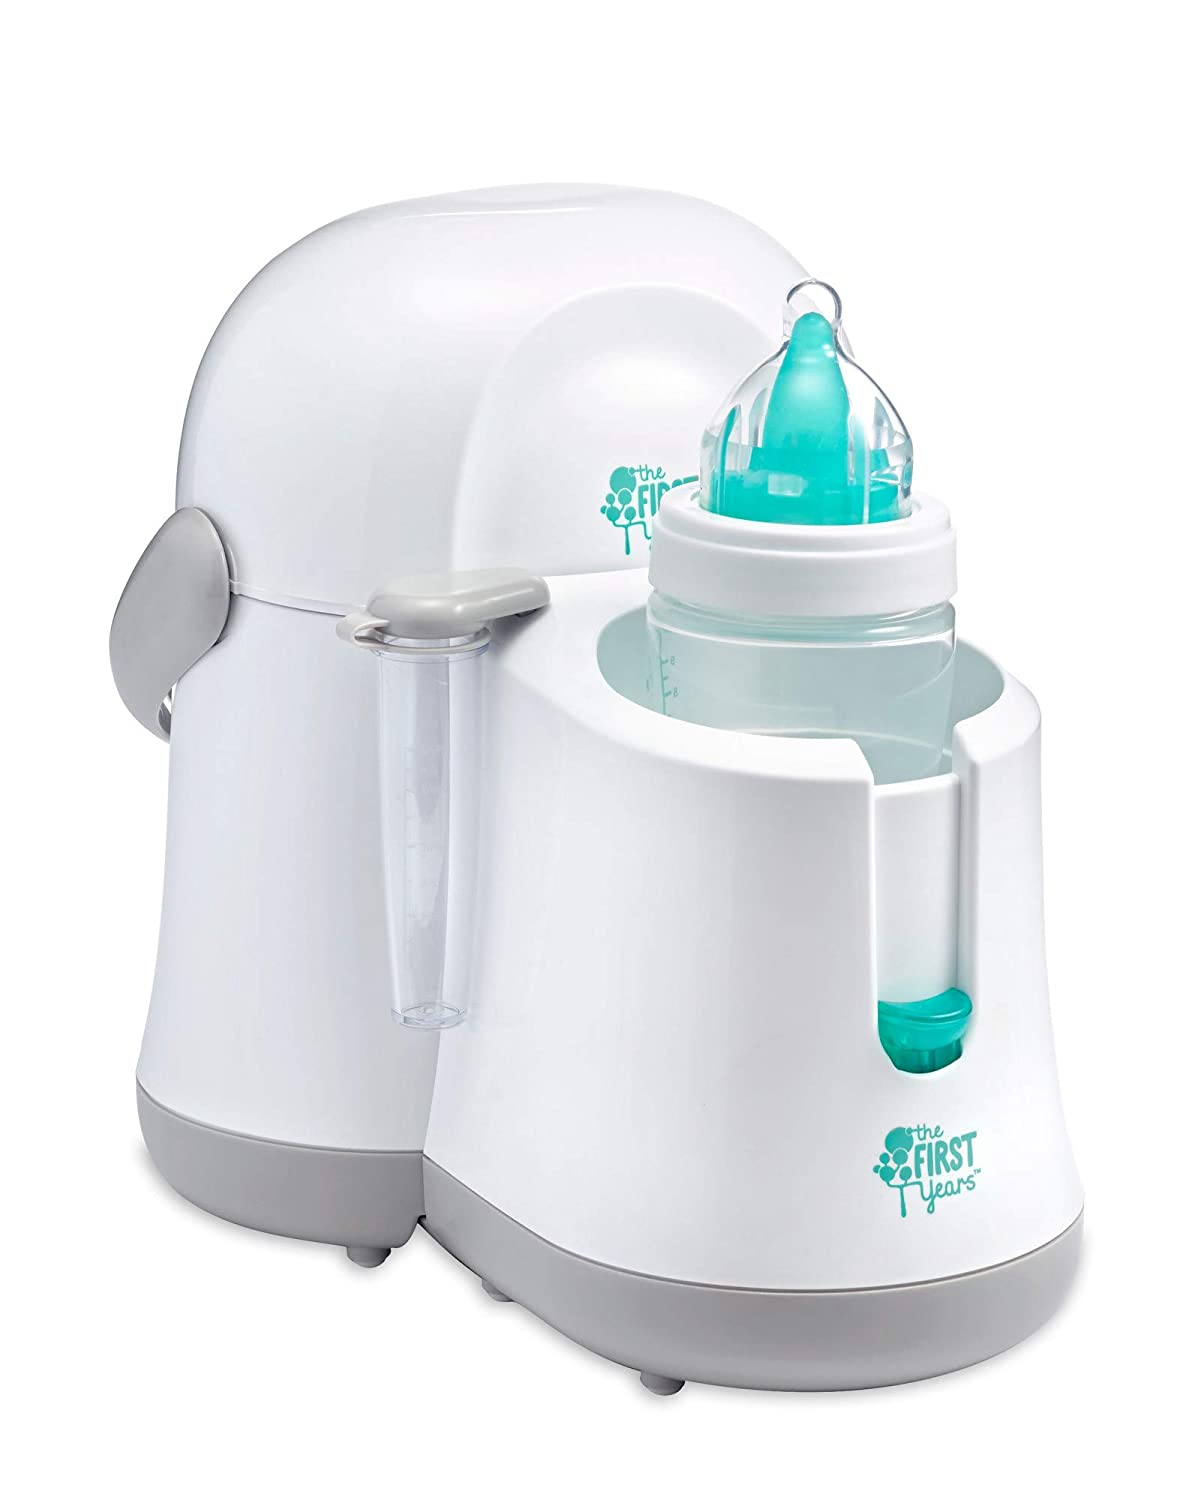 Top 8 Best Baby Bottle Warmers Reviews in 2019 1